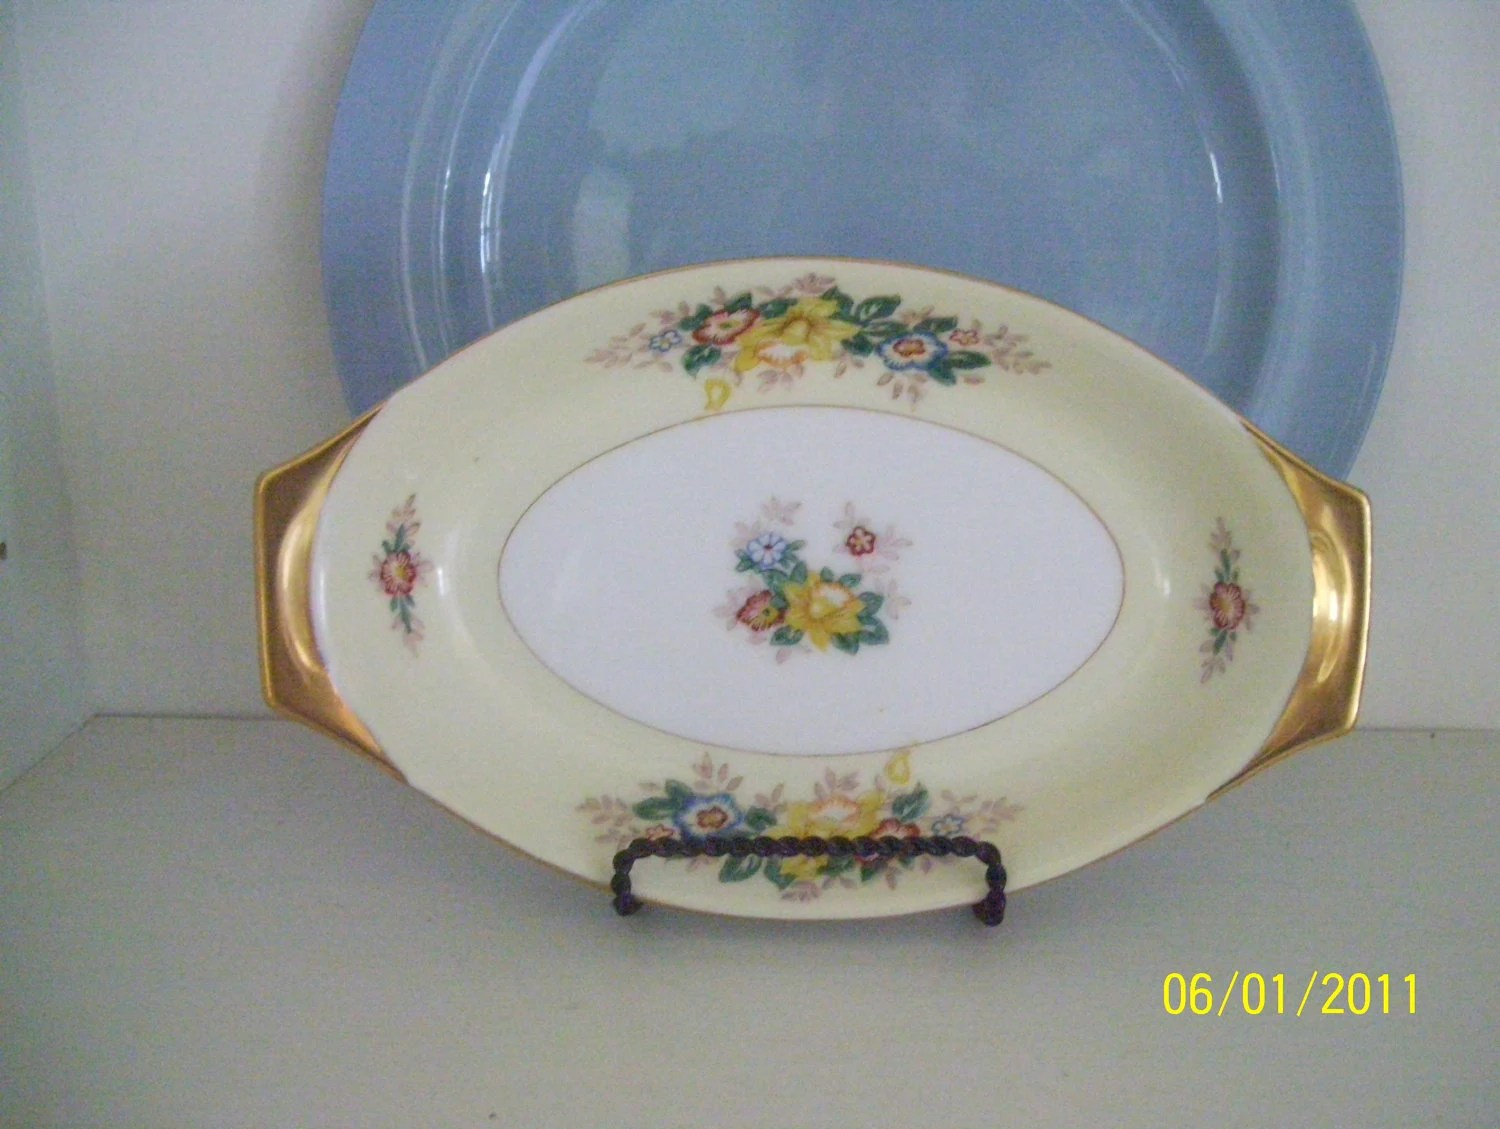 Vintage Meito Oval Plate Gilt Handles Hand Painted Japan